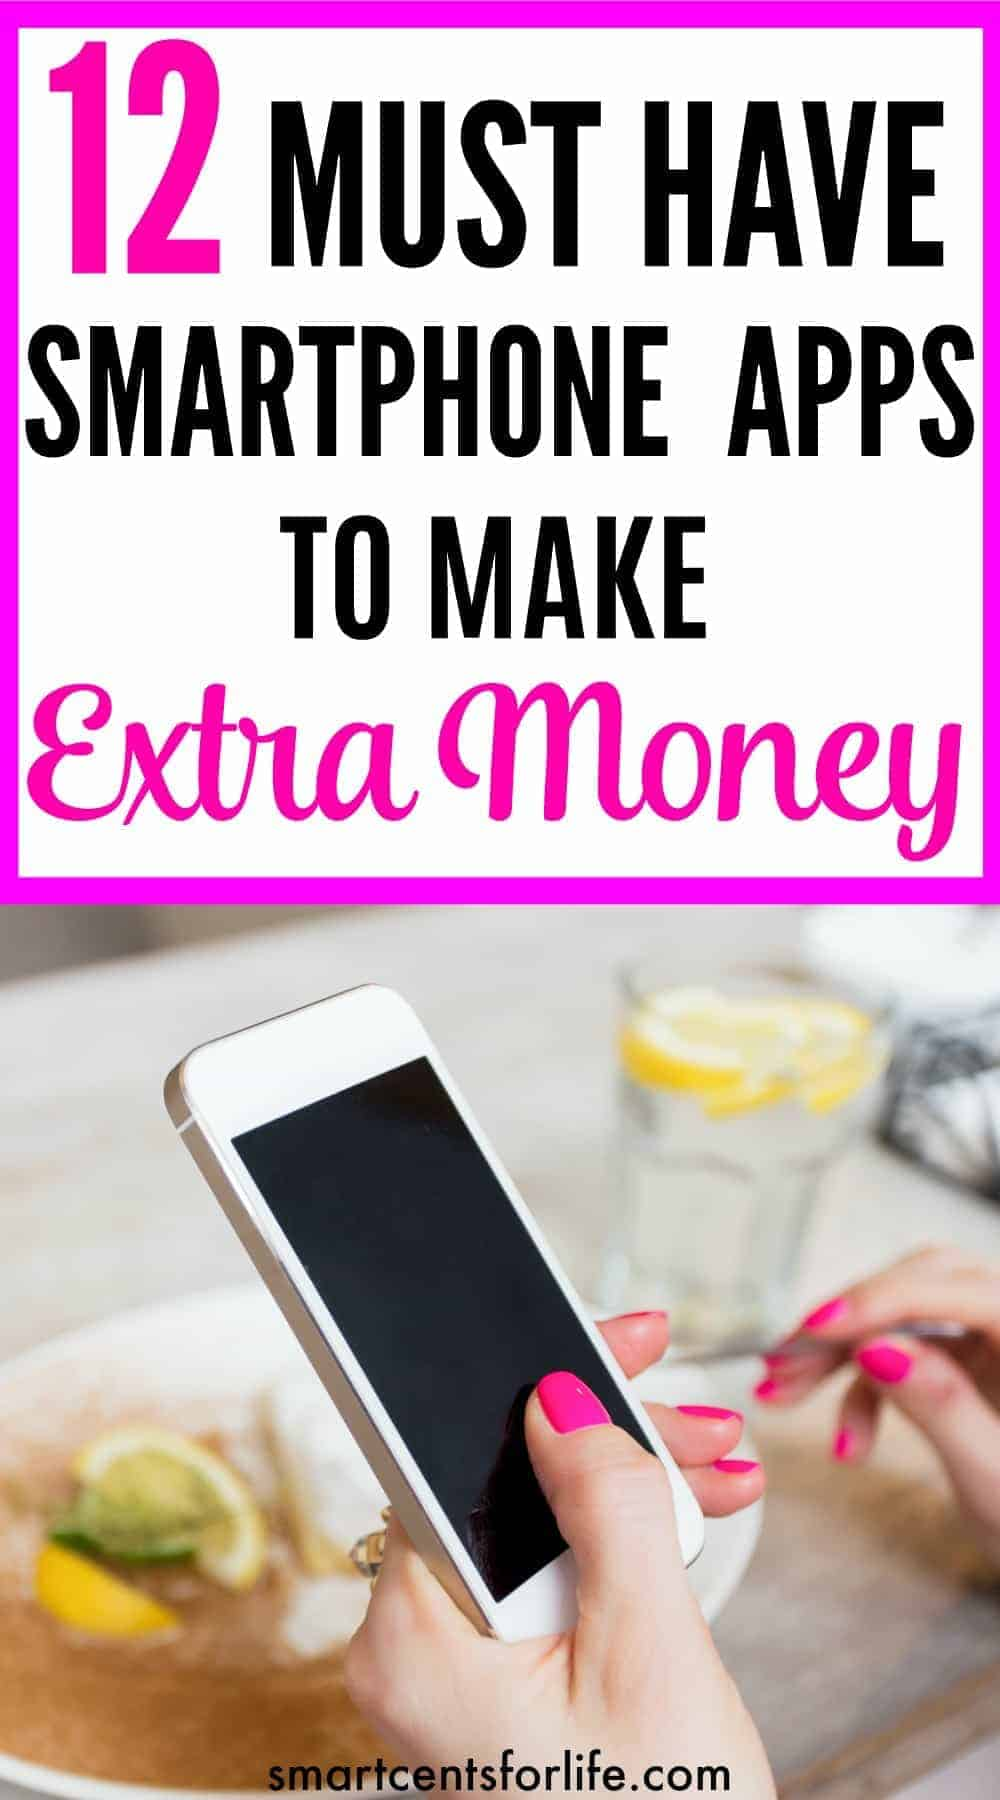 12 Must Have Smartphone Apps to Make Extra Money. This list of free smartphone apps will help you to earn extra cash! This is an easy way to earn a passive income with your phone. You can make money in your spare time or on the go. These money making apps are free to download and very easy to use!